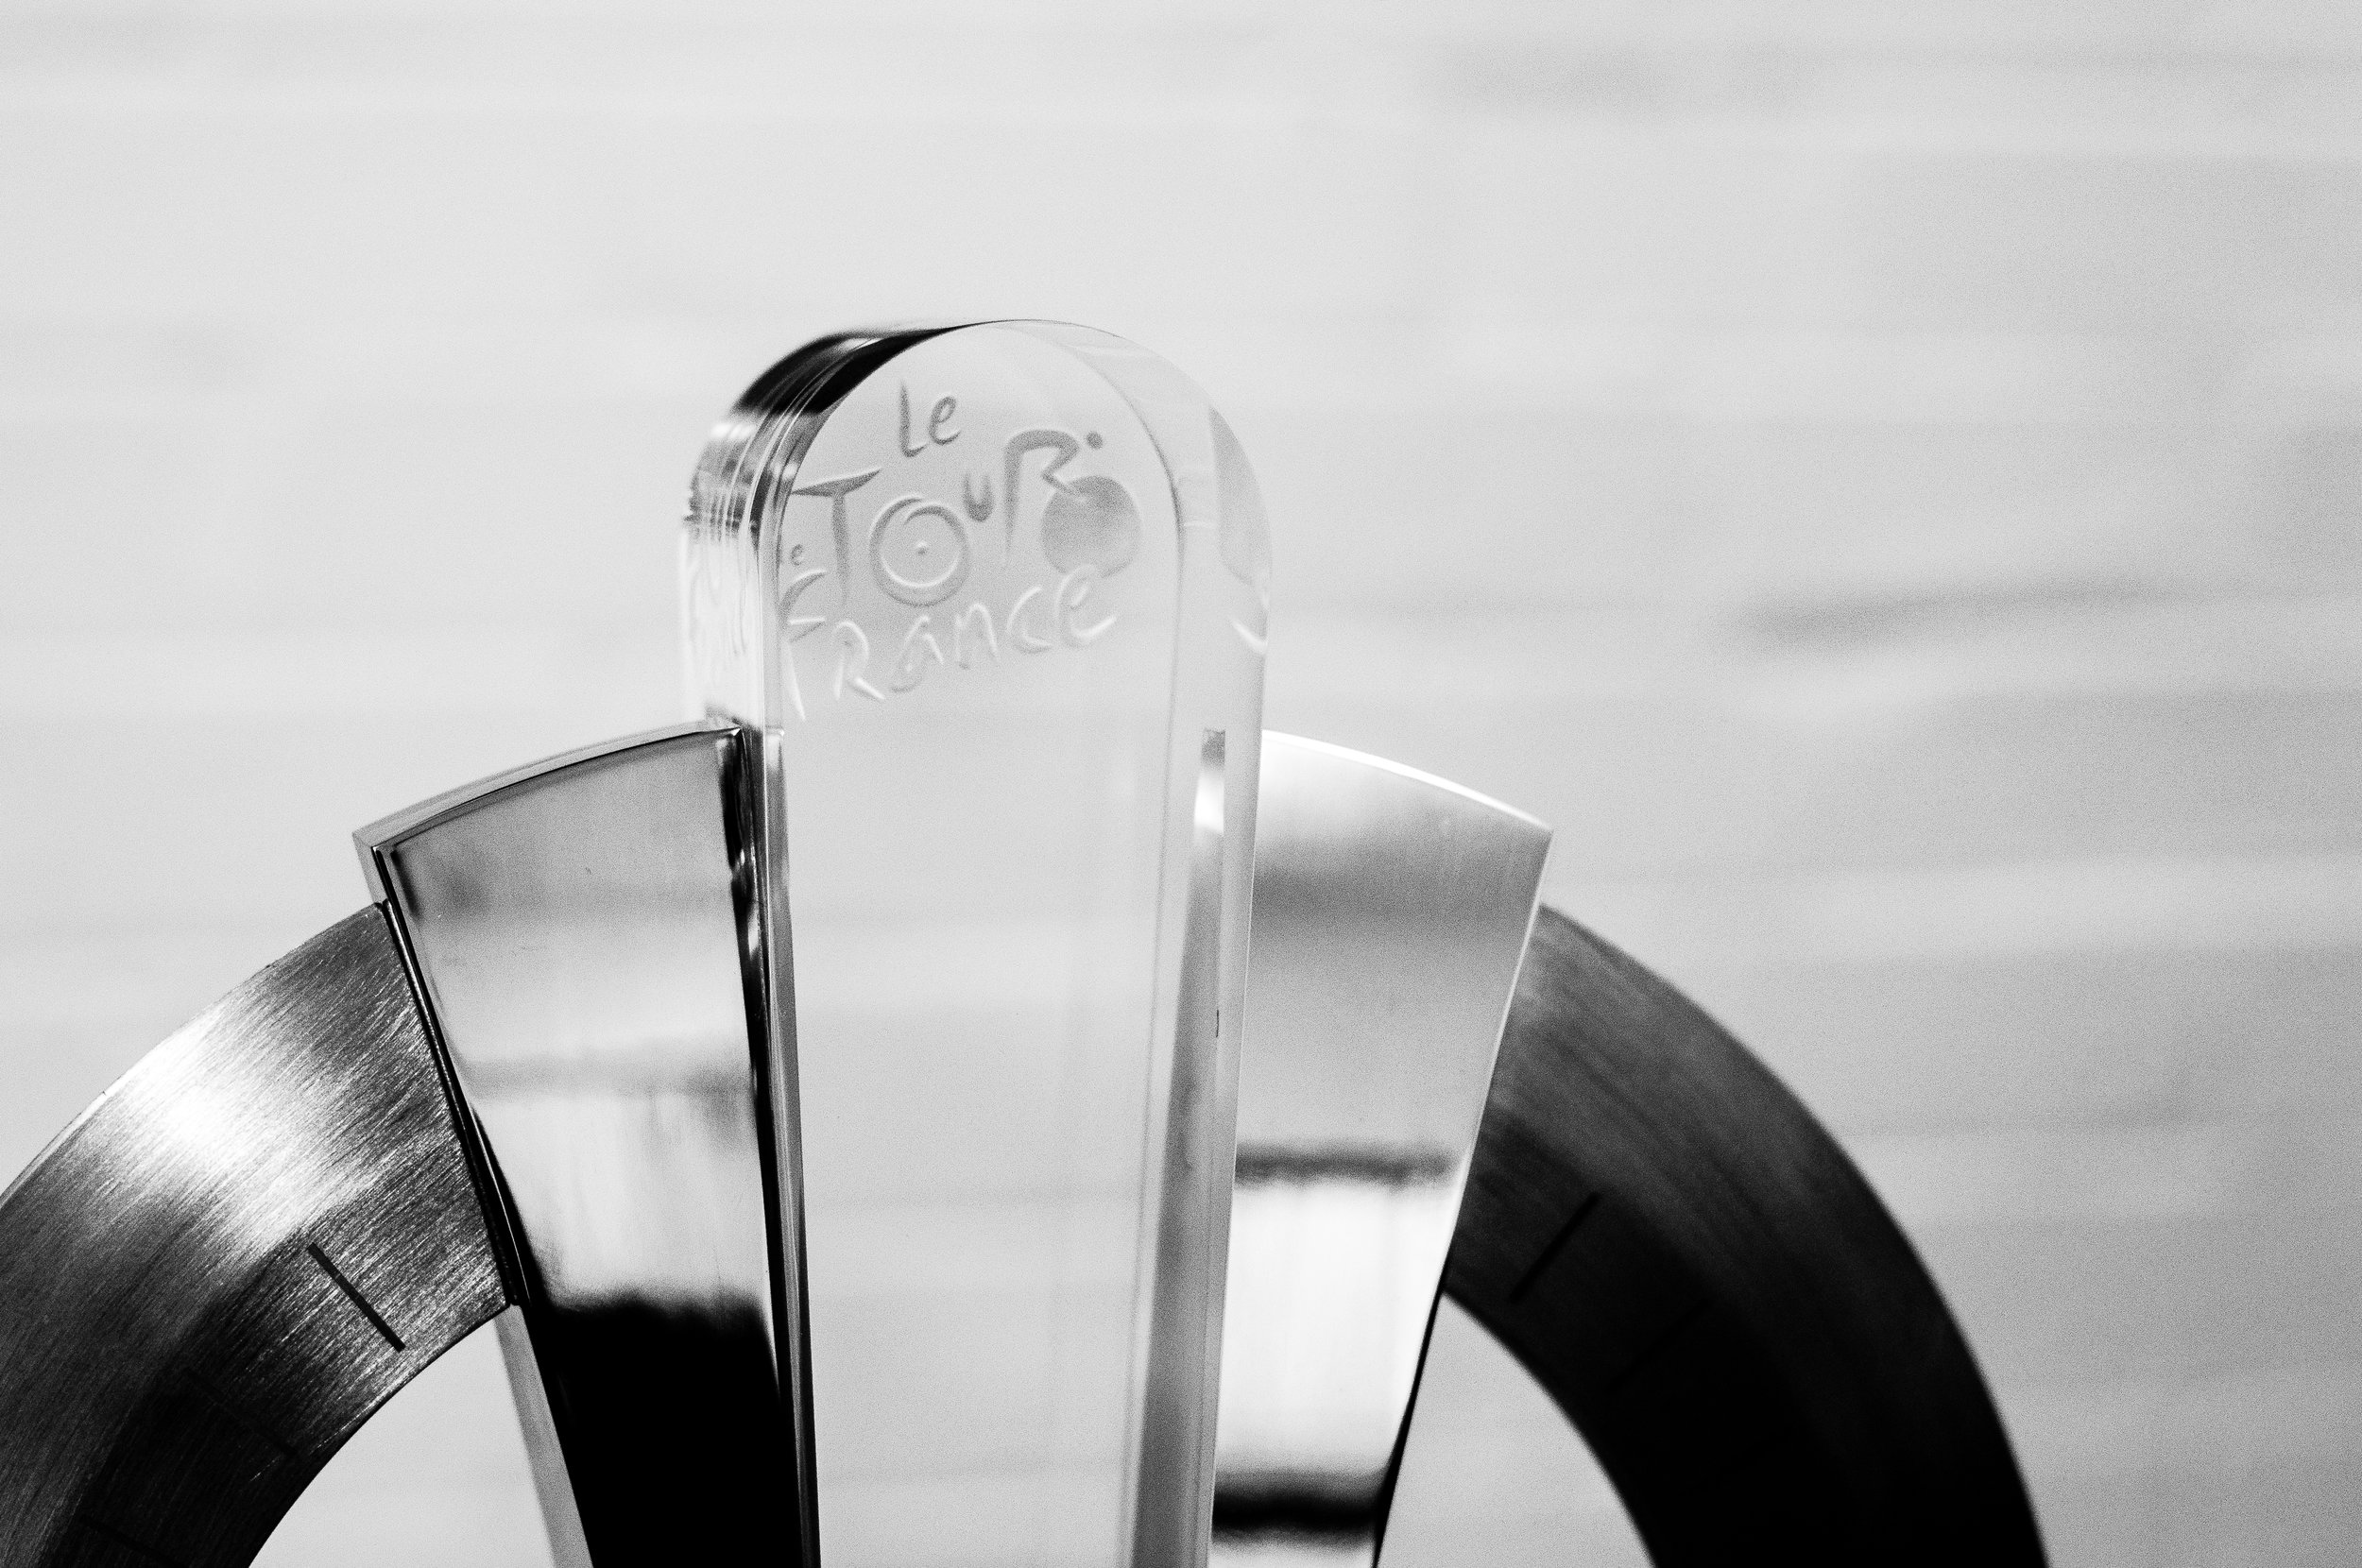 Made of stainless steel and glass, the trophy is worth approximately €4000. 1/250th sec @ f/2.8, ISO 640 (Nikkor 50 mm f/1.8)